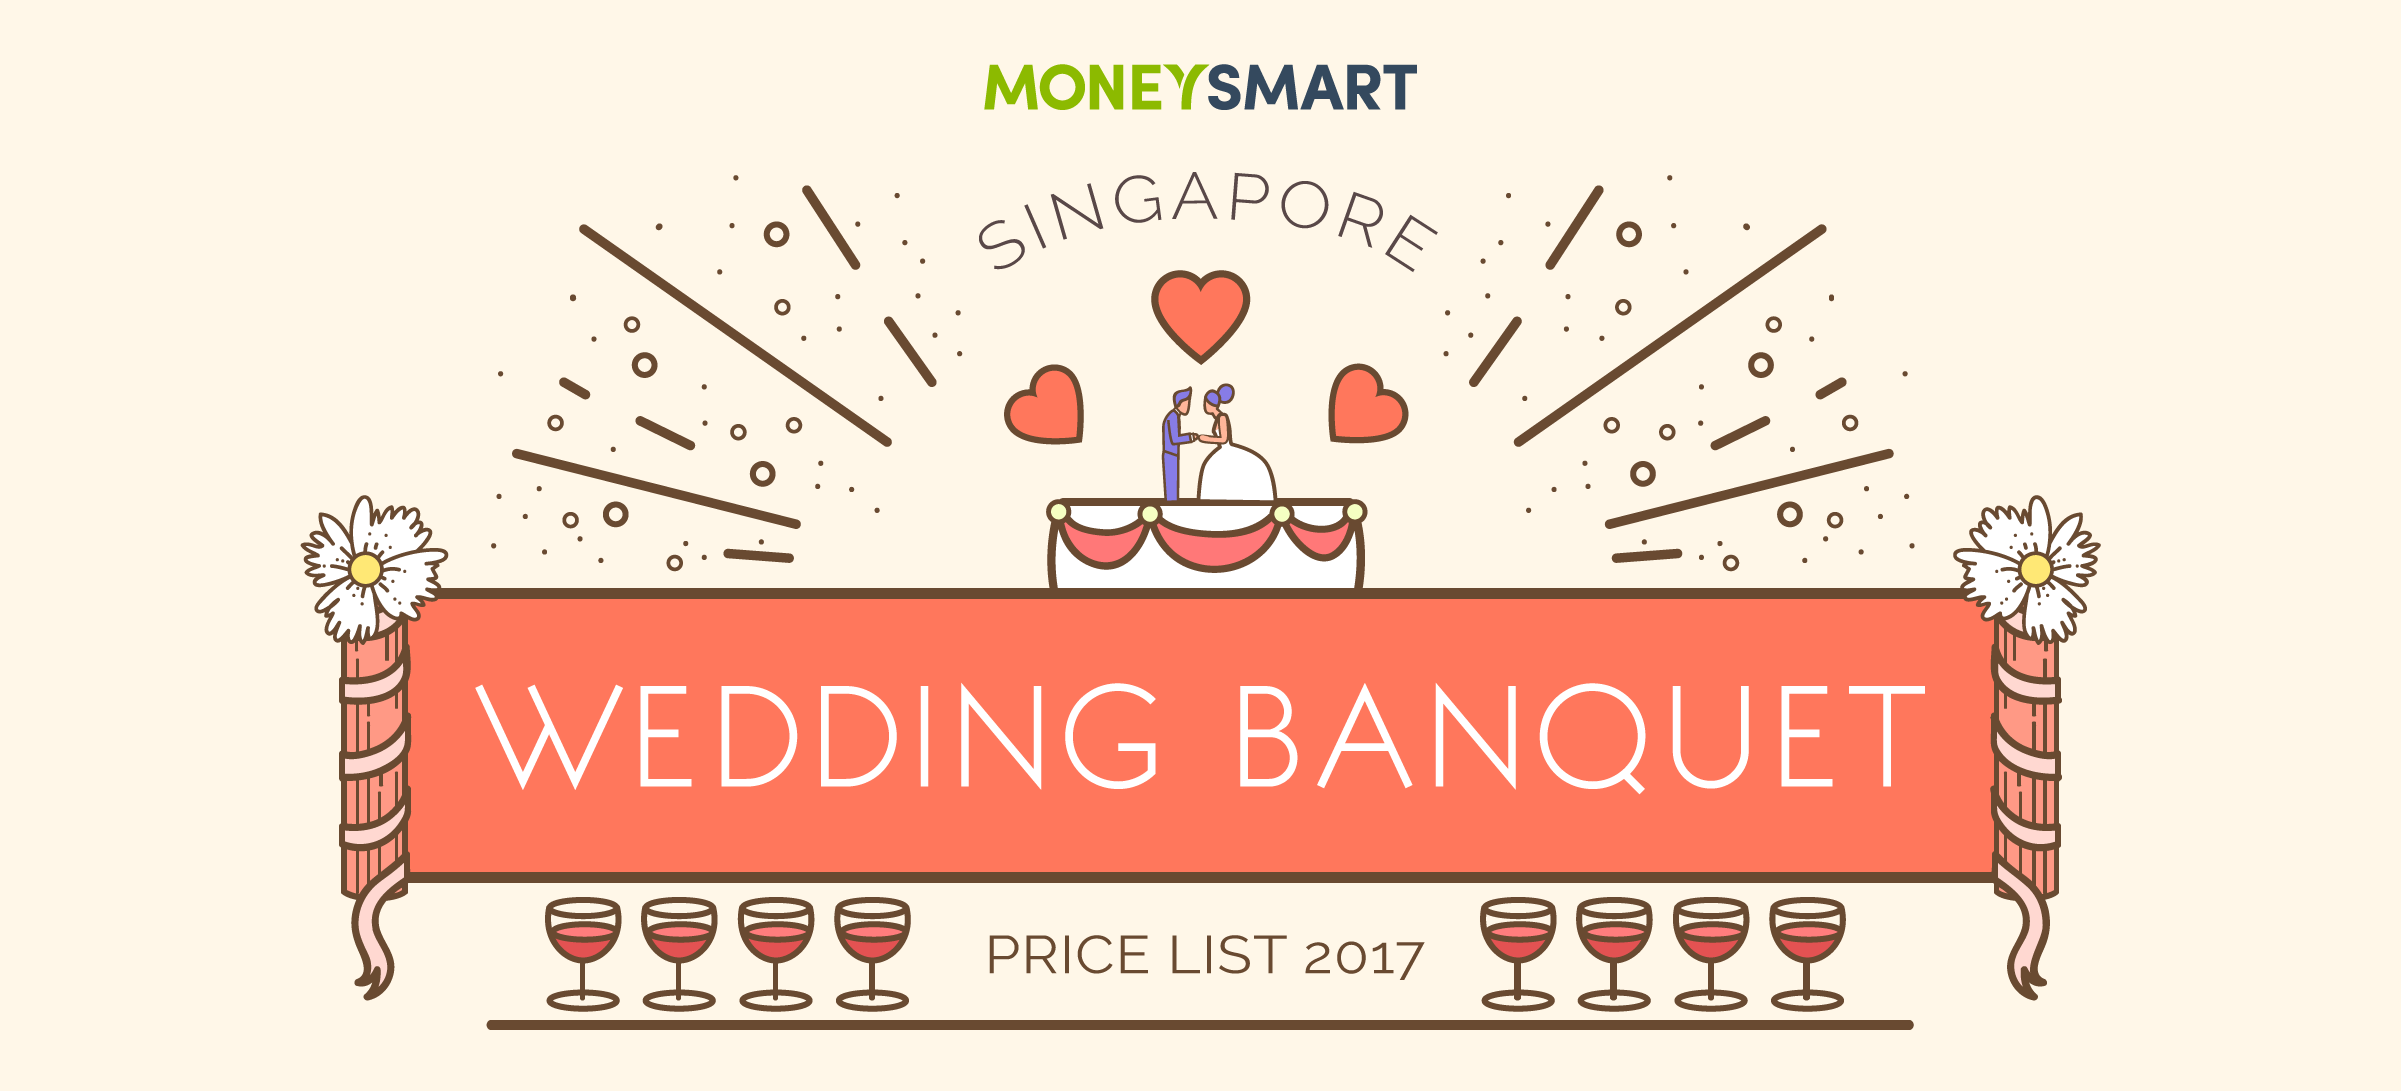 wedding banquet 2017 singapore